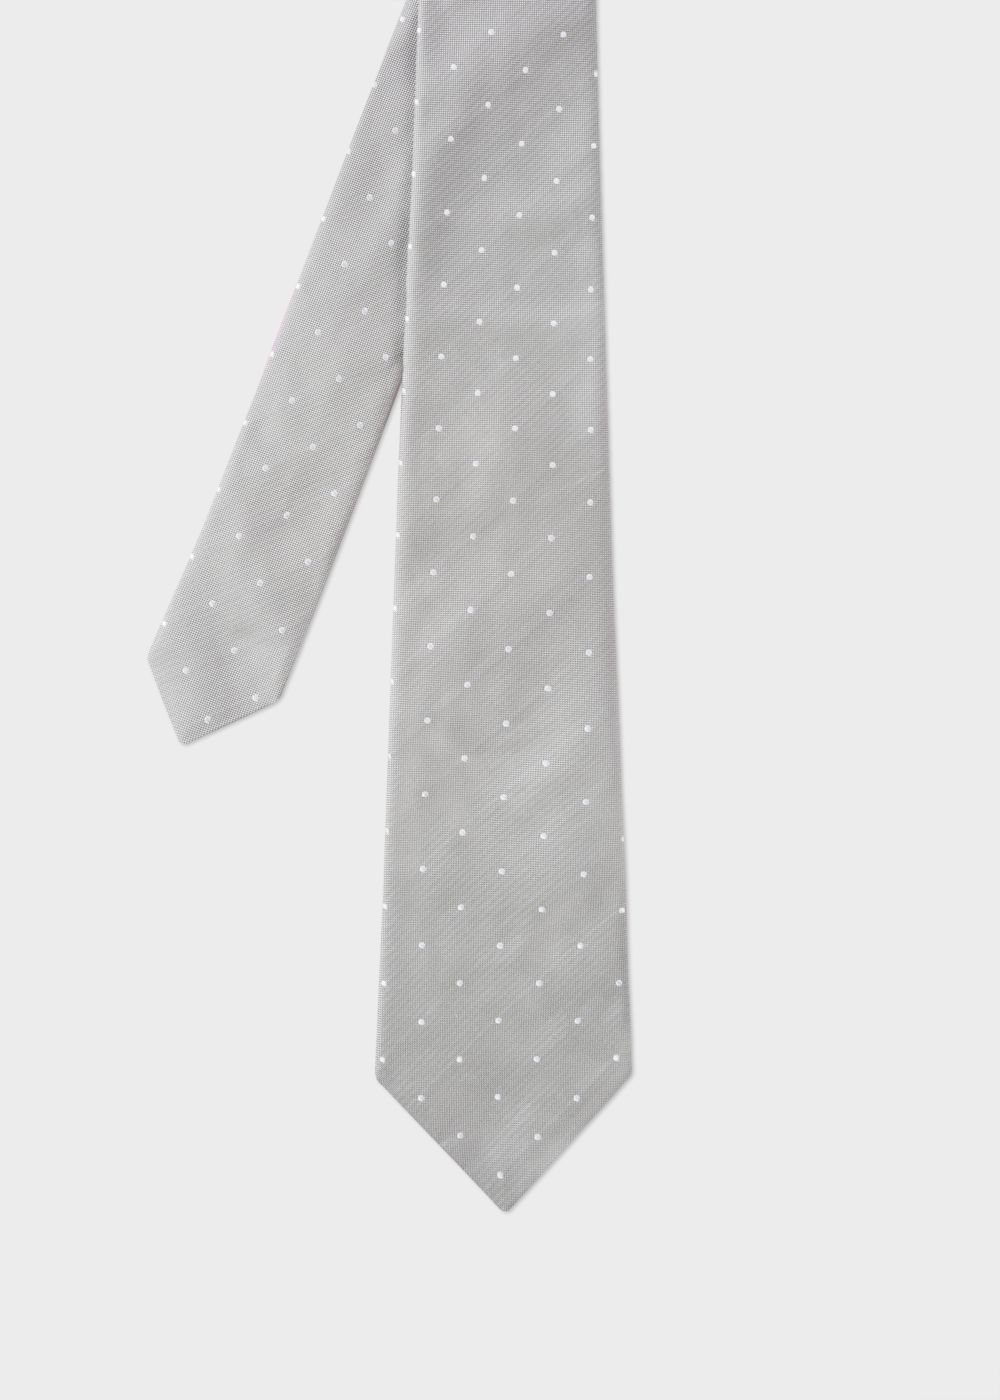 Paul Smith Men's Grey Micro-Polka Silk Tie With 'Naked Lady' Lining